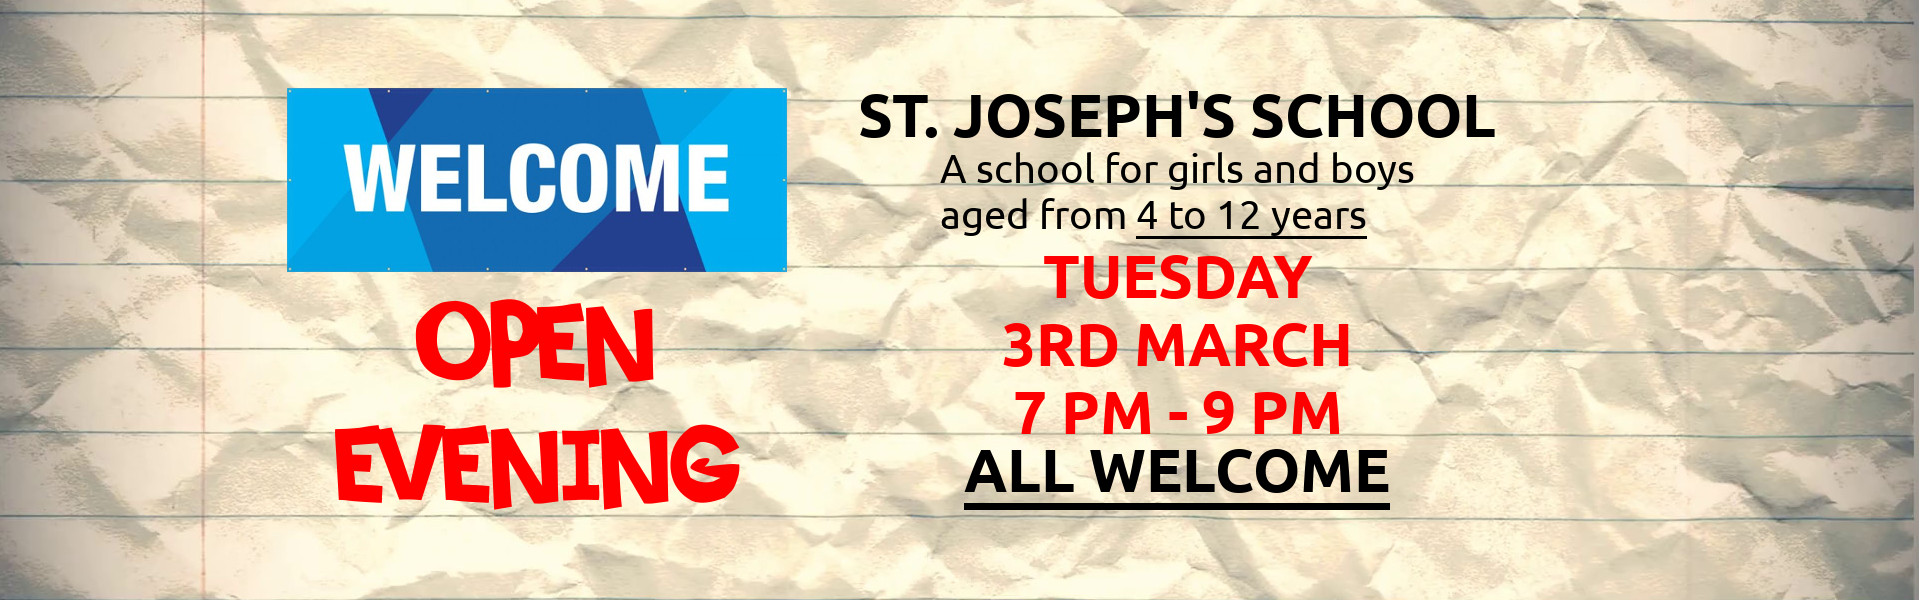 St. Joseph's Banner - Open Evening 2020